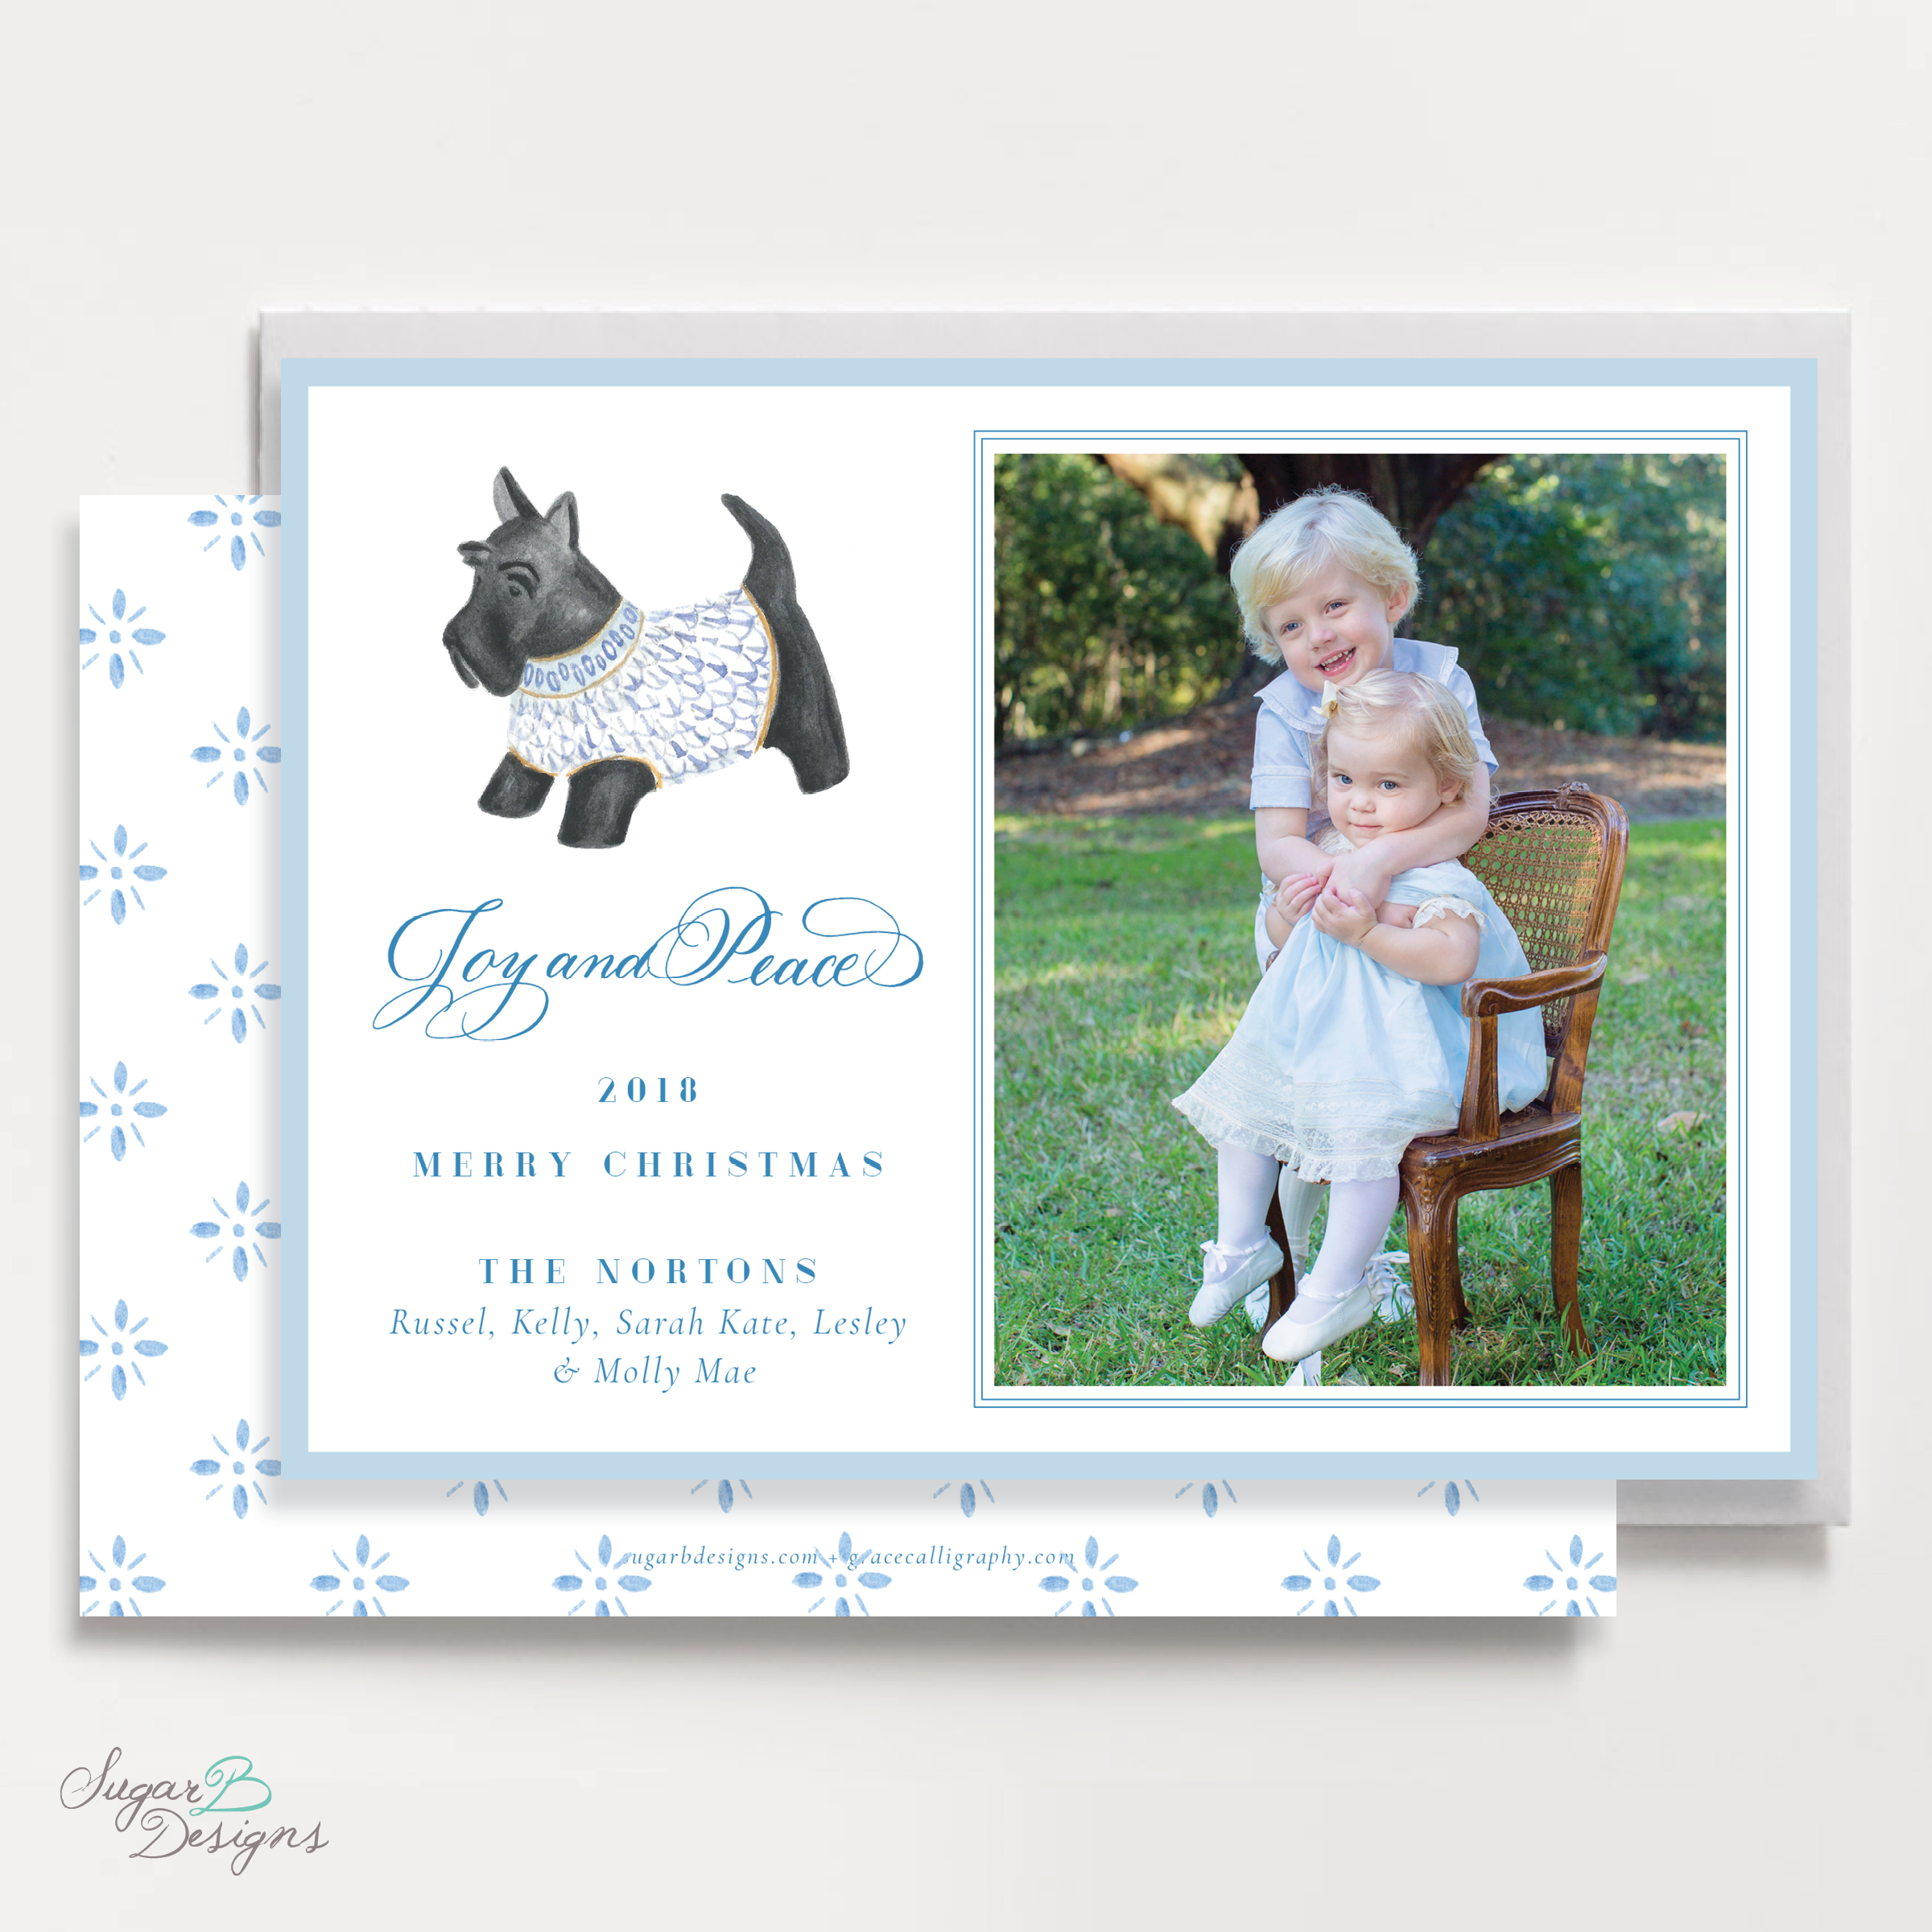 Herend Inspired Scottie Dog Landscape front + back Christmas Card by Sugar B Designs.png